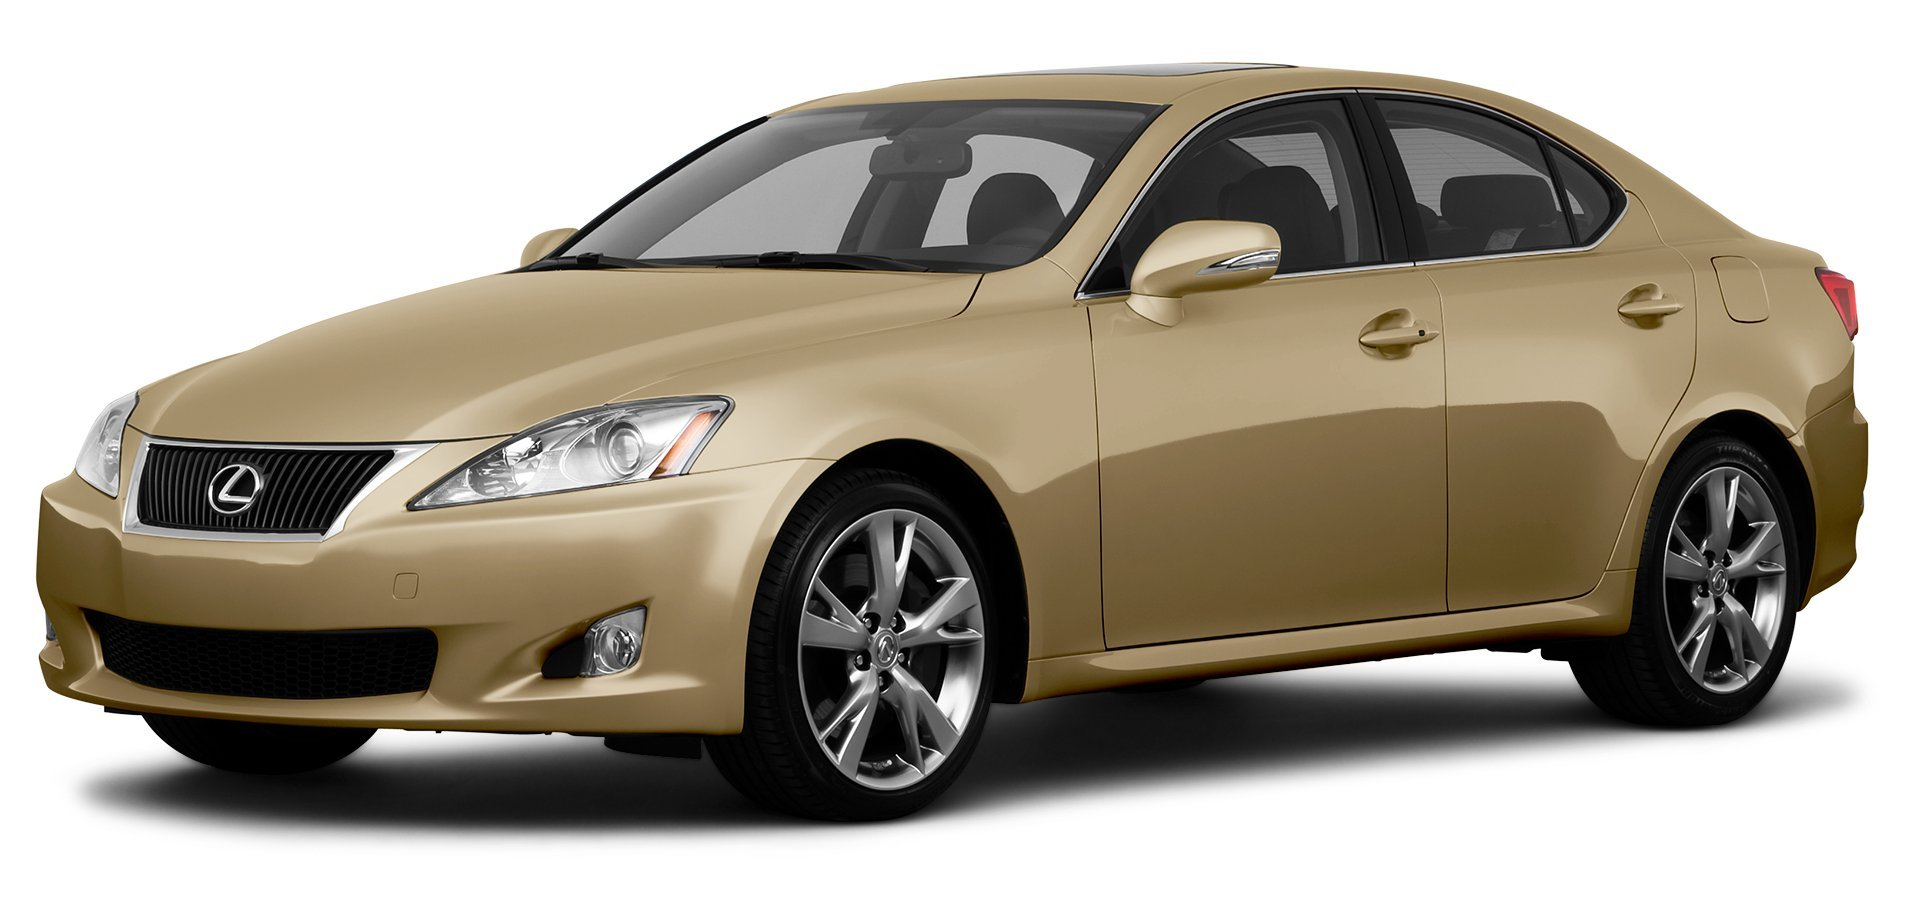 Amazoncom 2010 Lexus IS350 Reviews Images and Specs Vehicles